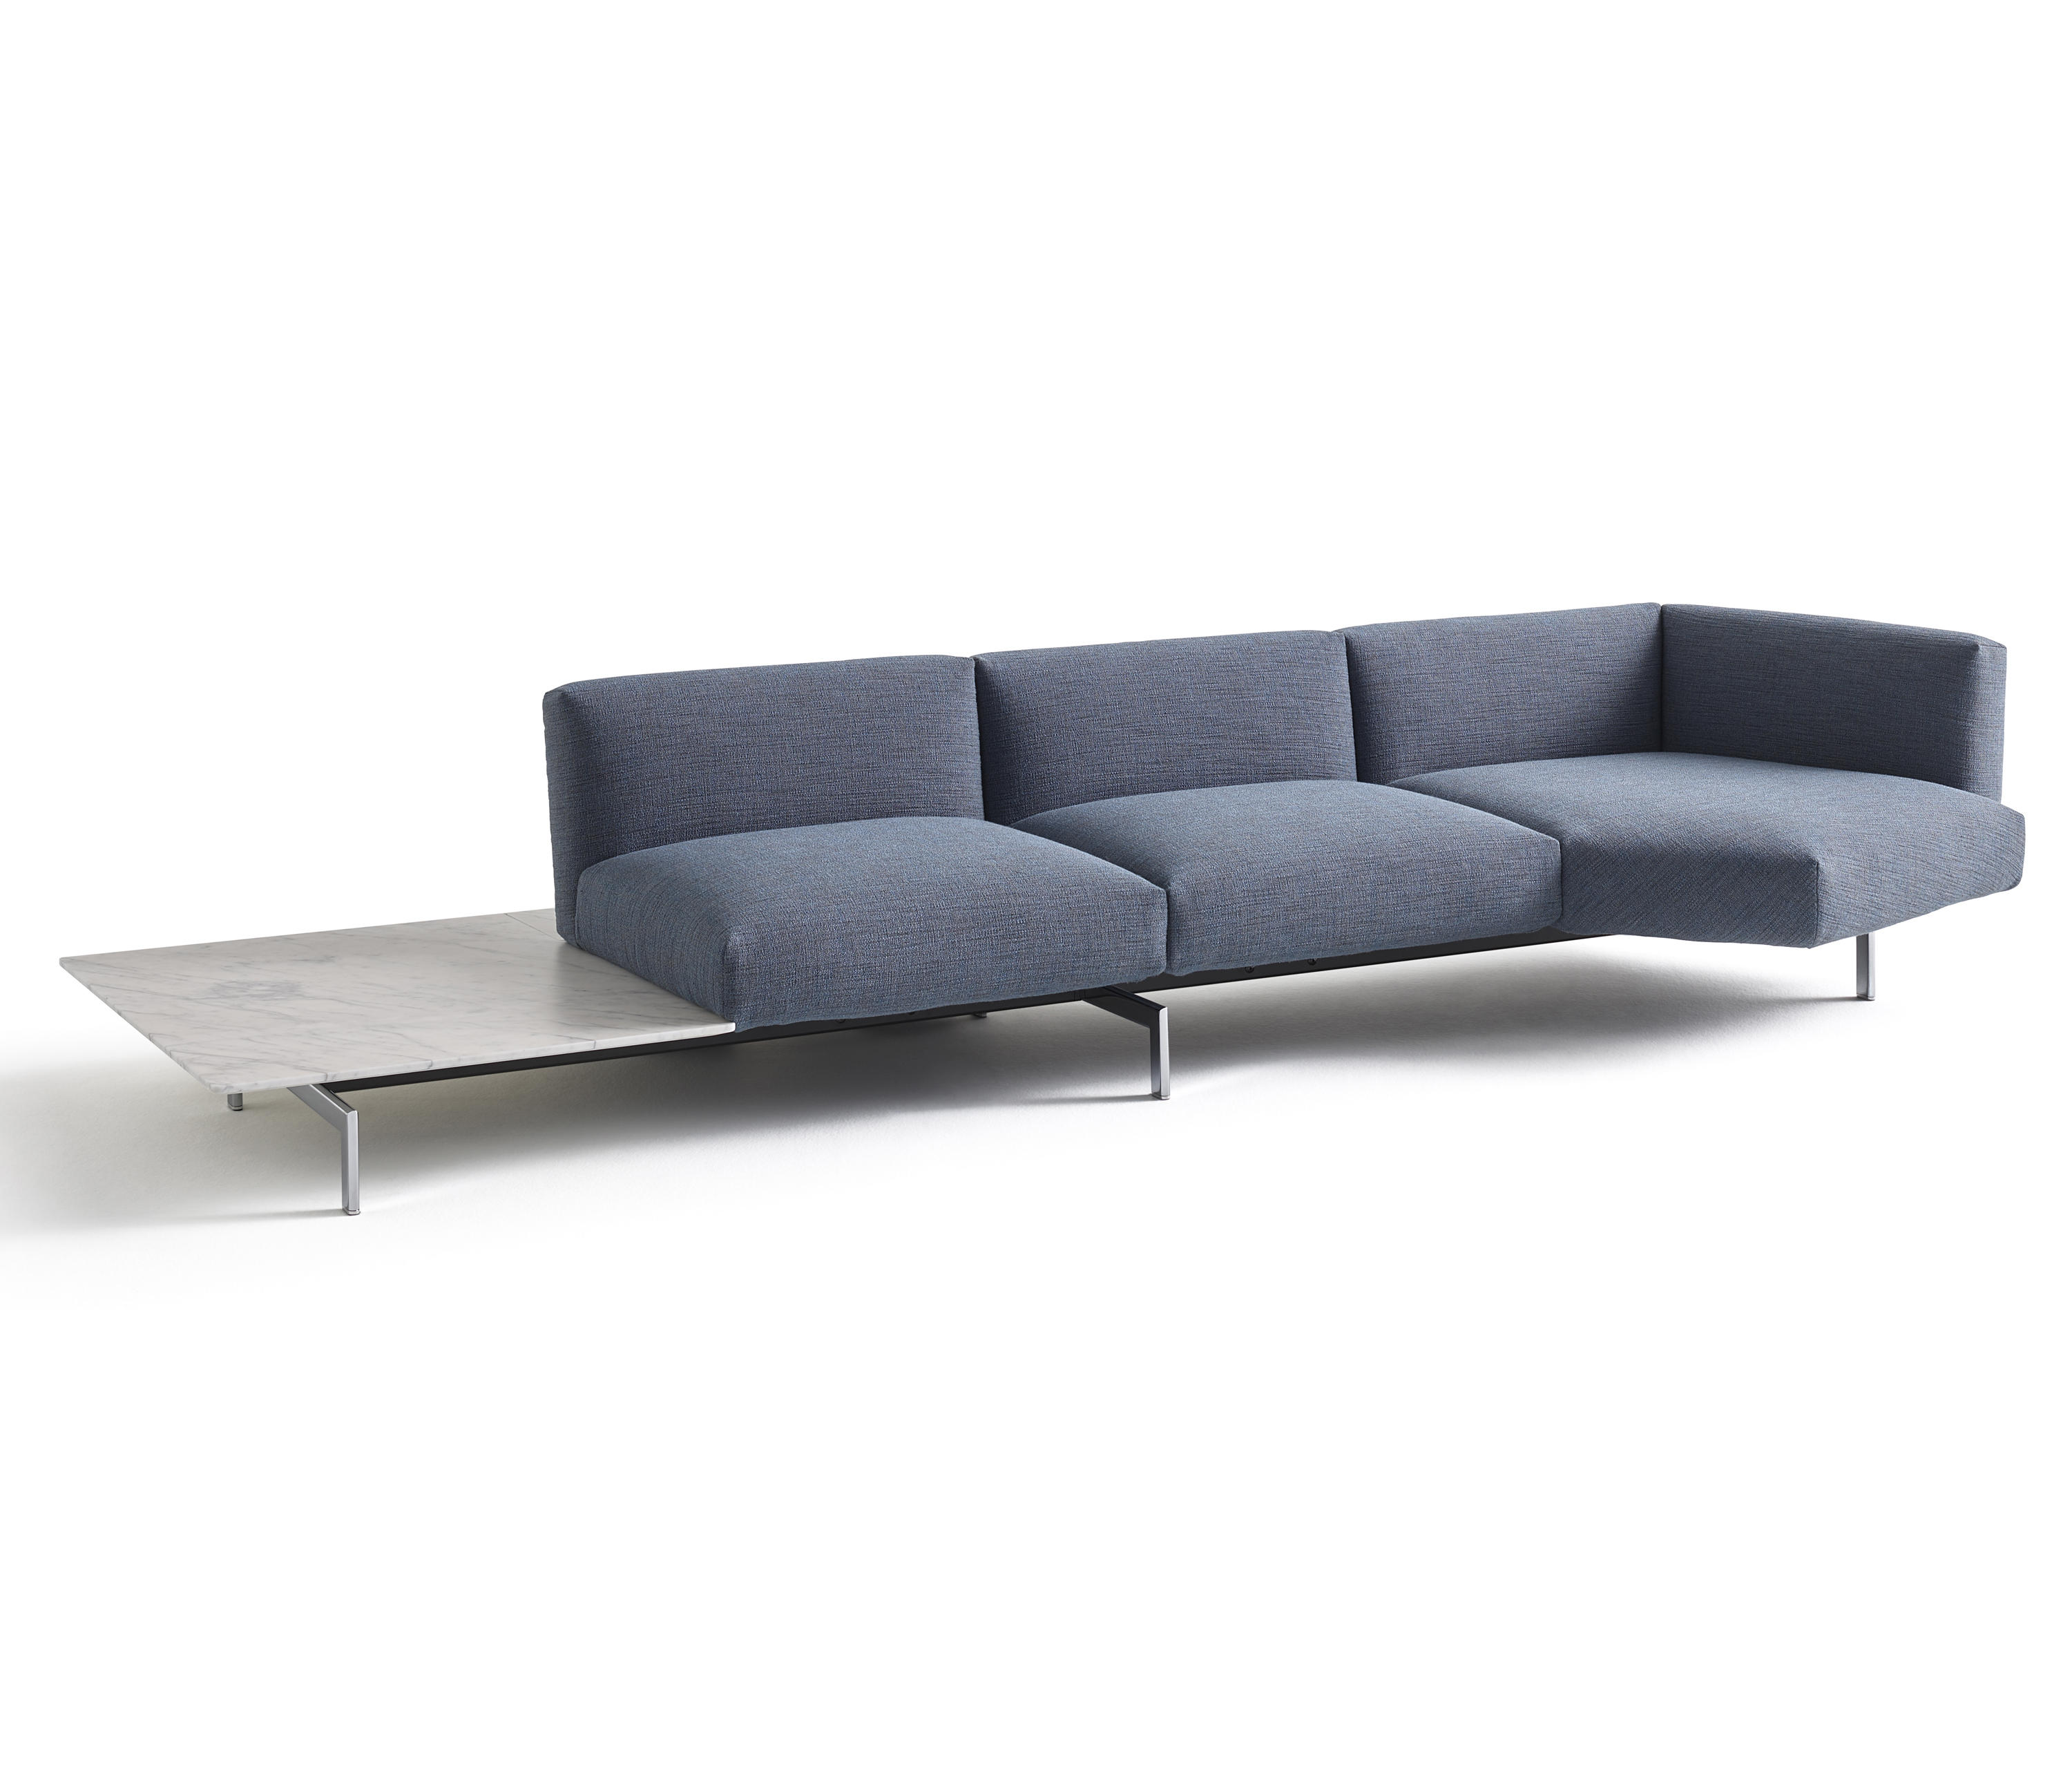 Knoll Sofa Avio Sofa System Sofas From Knoll International Architonic